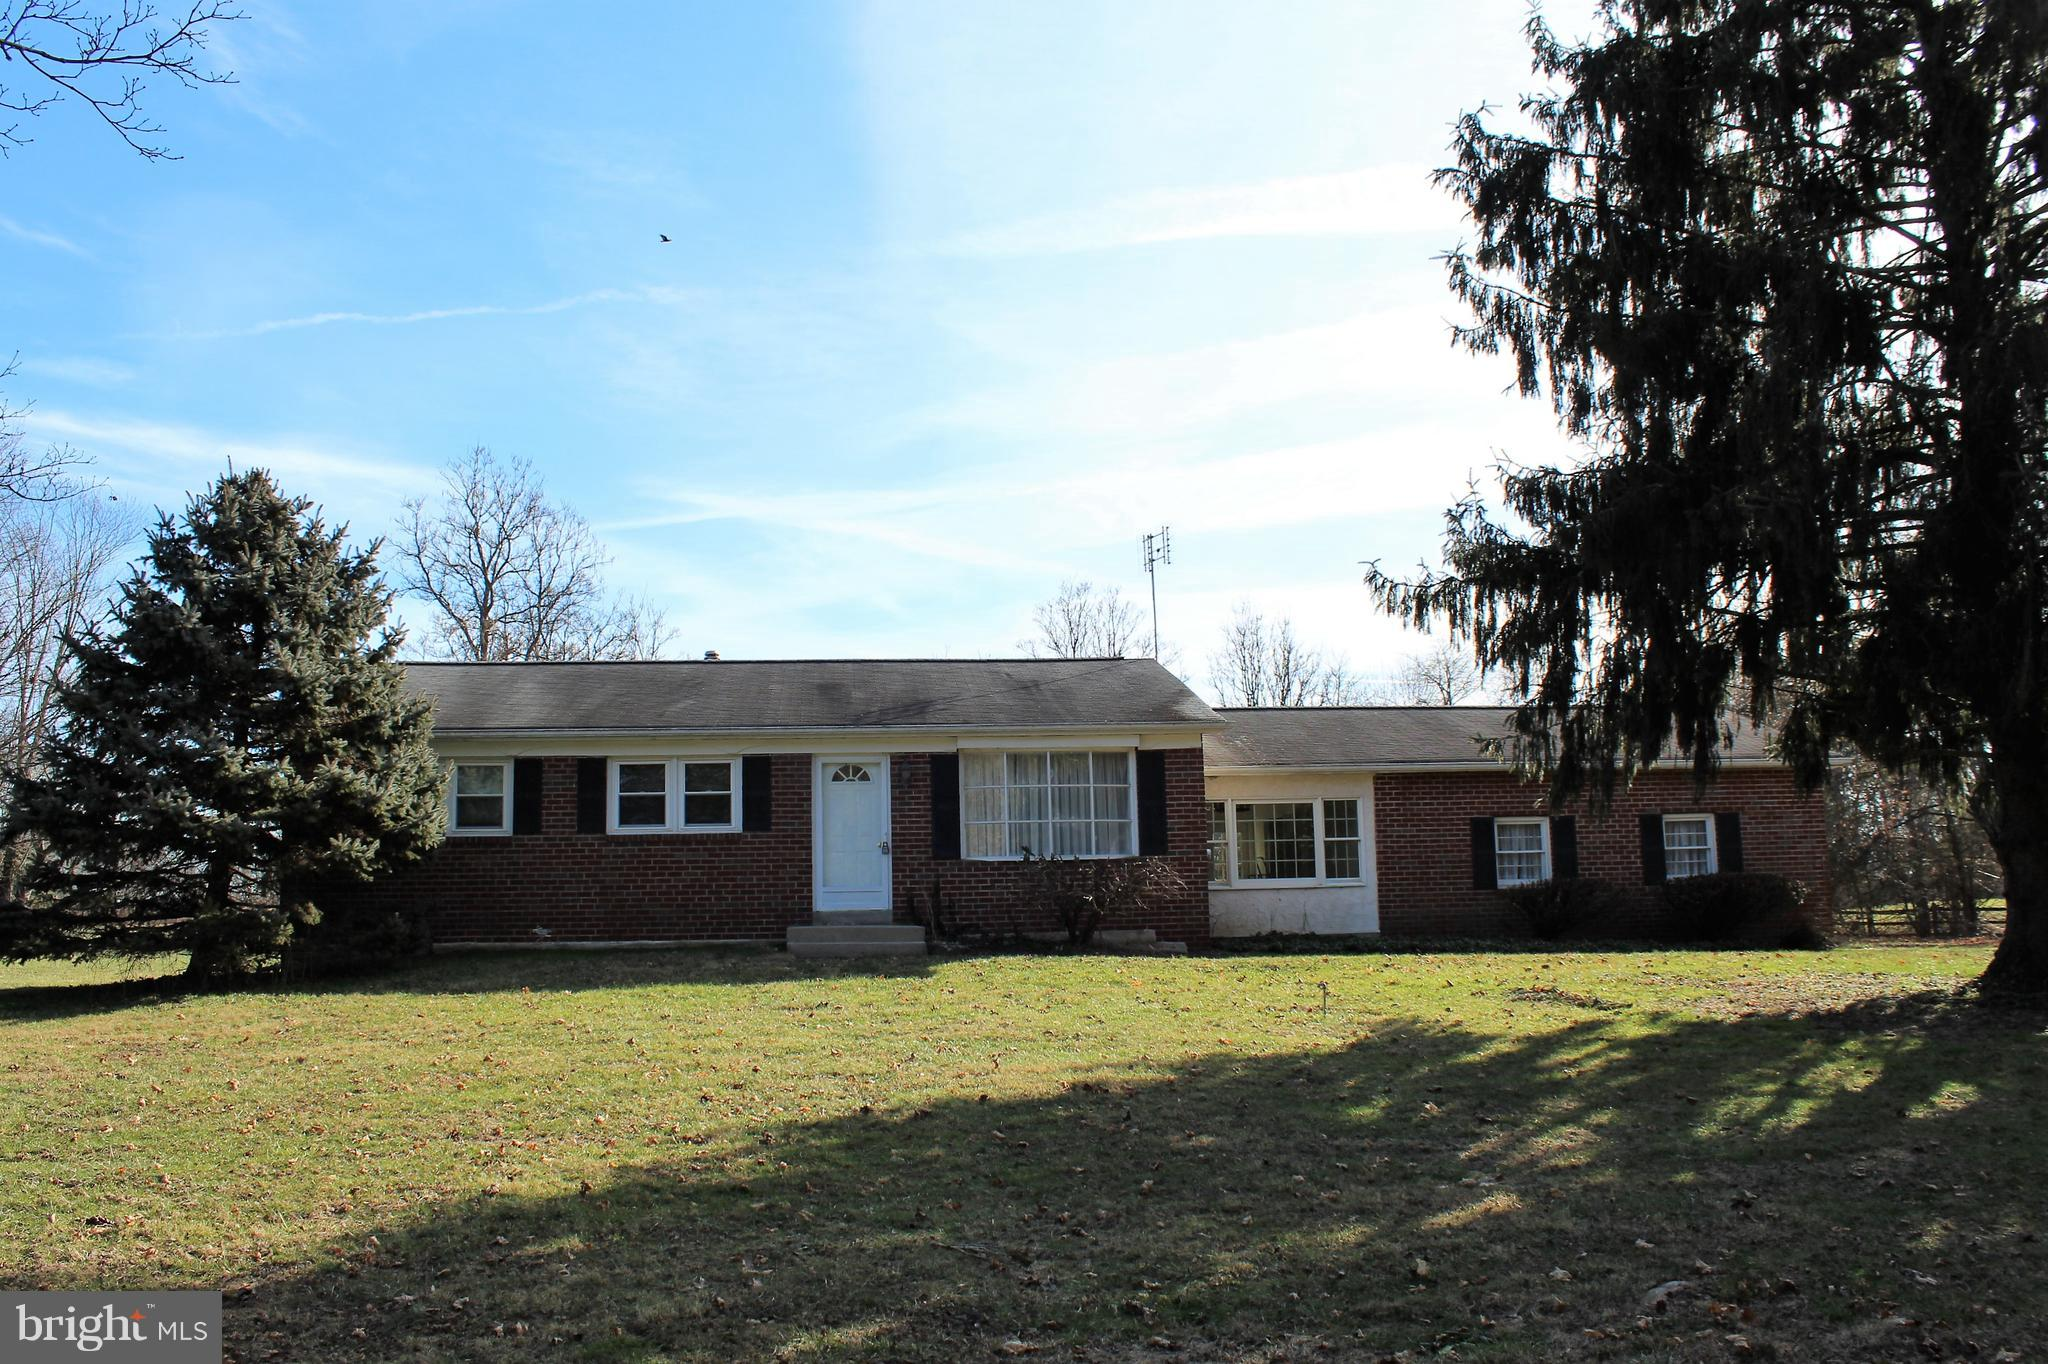 4675 SMITH ROAD, FURLONG, PA 18925